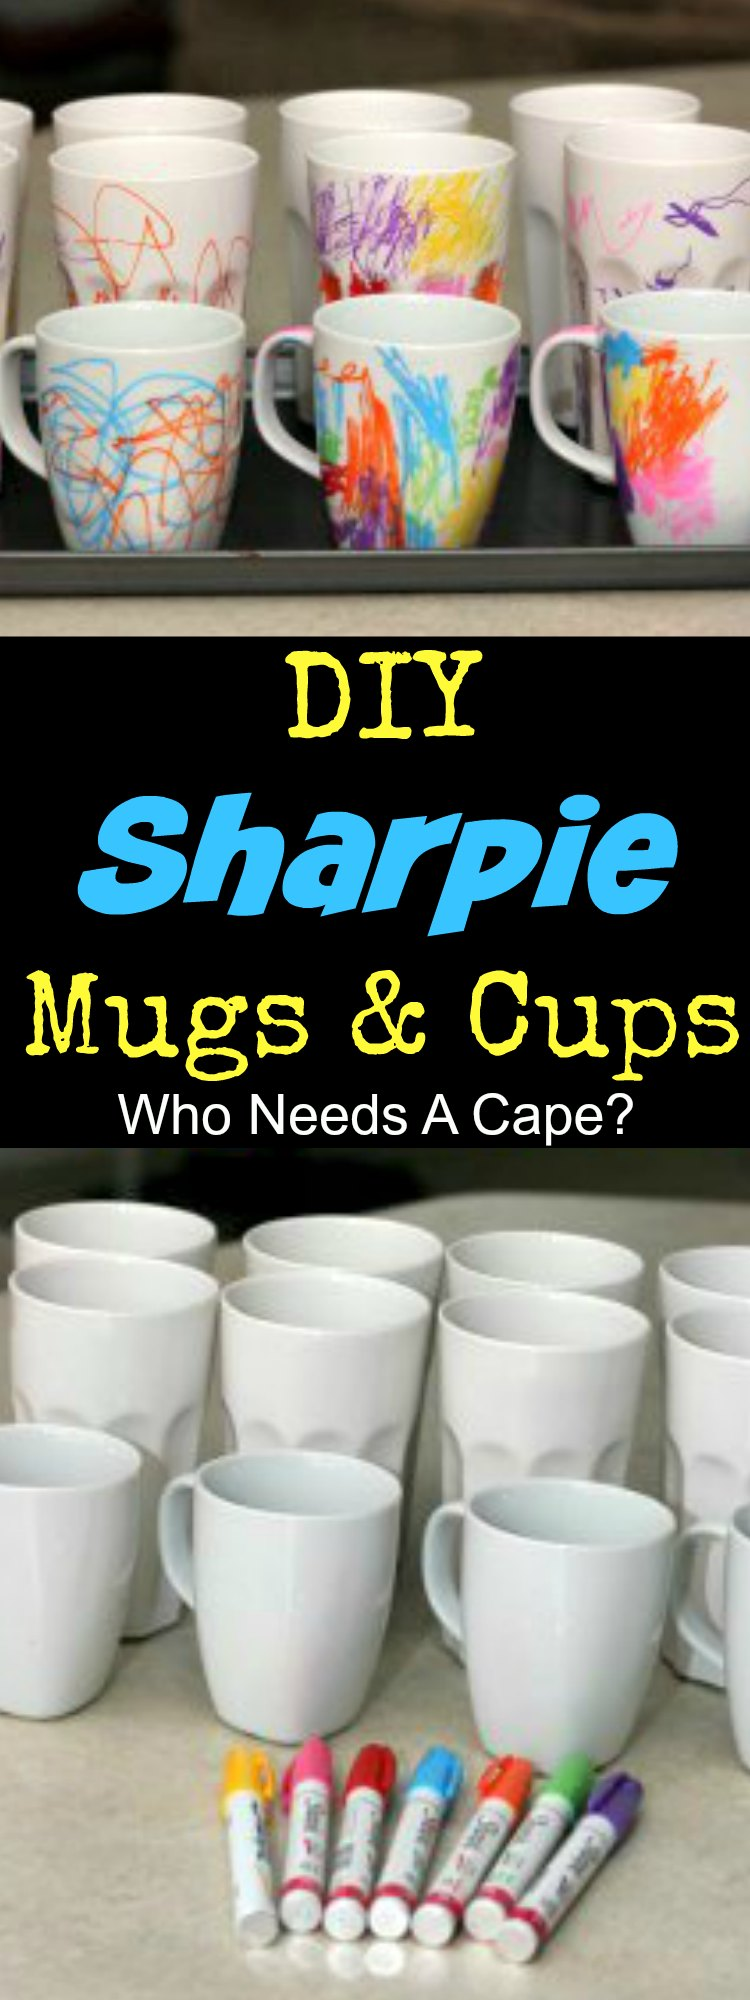 http://i0.wp.com/whoneedsacape.com/wp-content/uploads/2013/01/DIY-Sharpie-Mugs-Cups-Collage.jpg?zoom=1.5&resize=384%2C1024